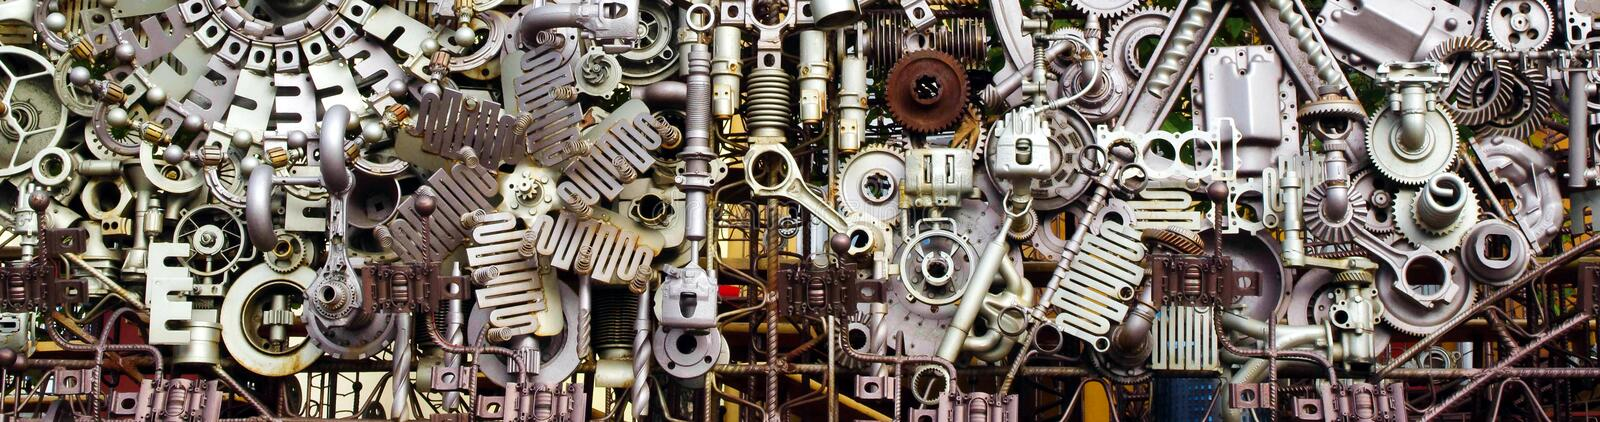 Download Assembly of machine parts stock photo. Image of details - 41581652